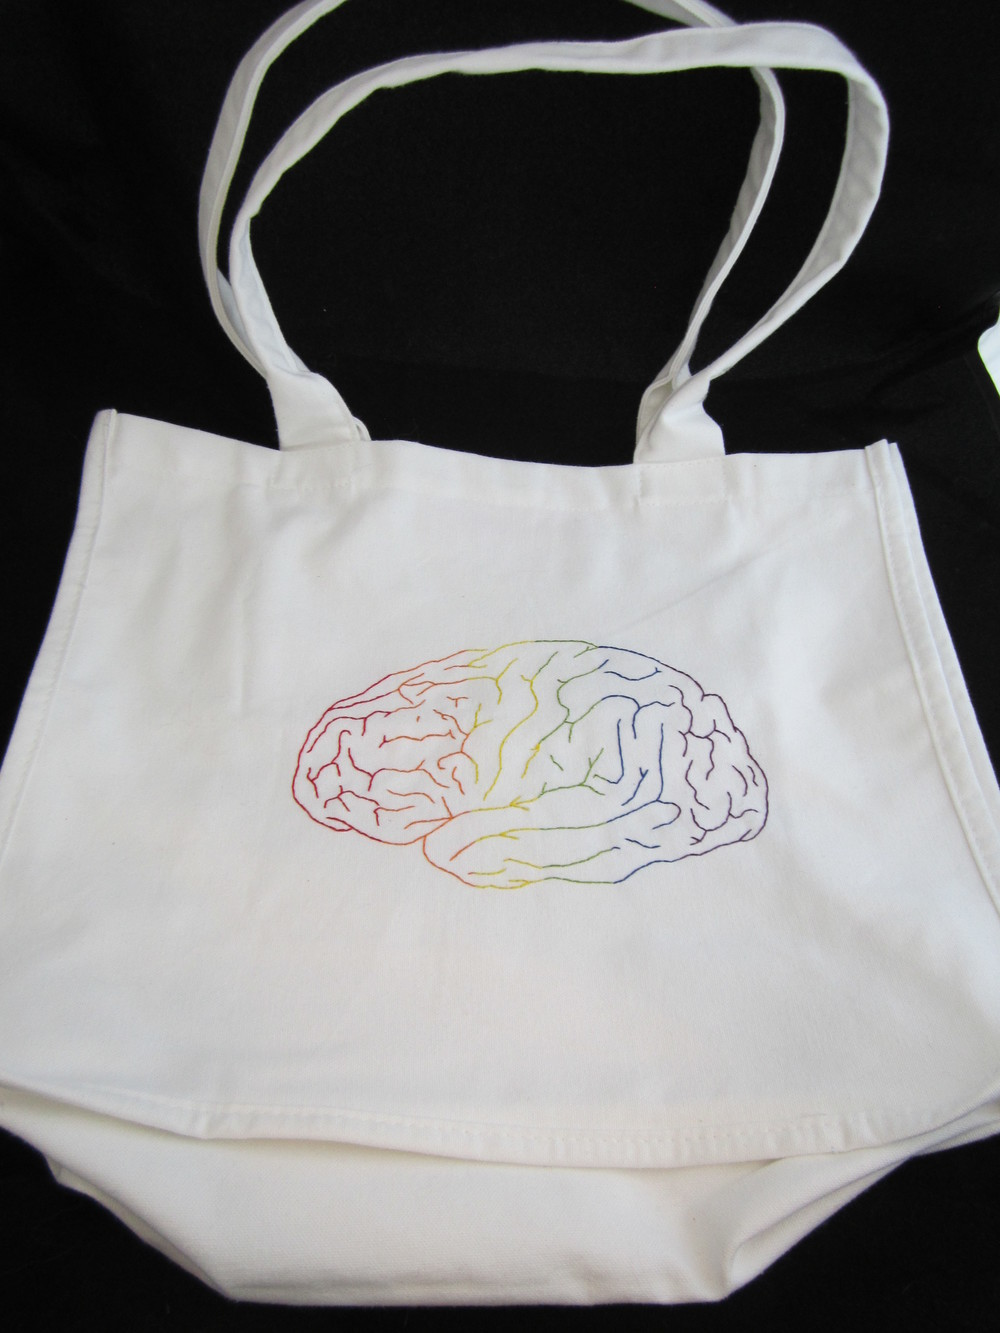 Brainbow Tote Bag 1.JPG